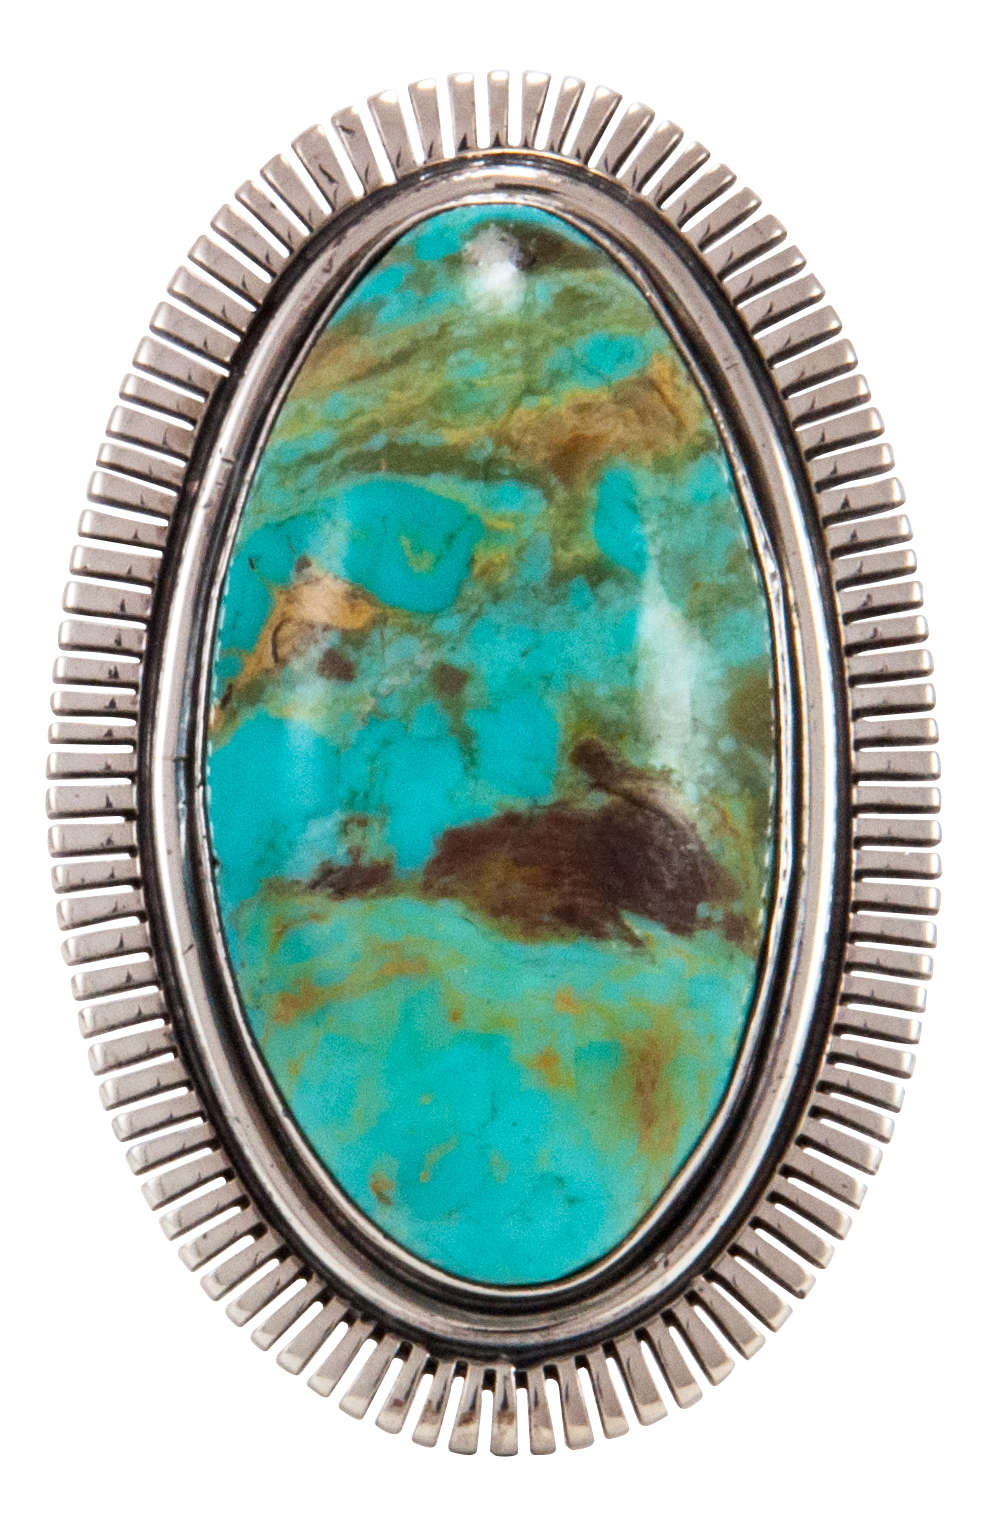 Navajo Native American Lone Mountain Turquoise Ring Size 9 by McReeves SKU232887